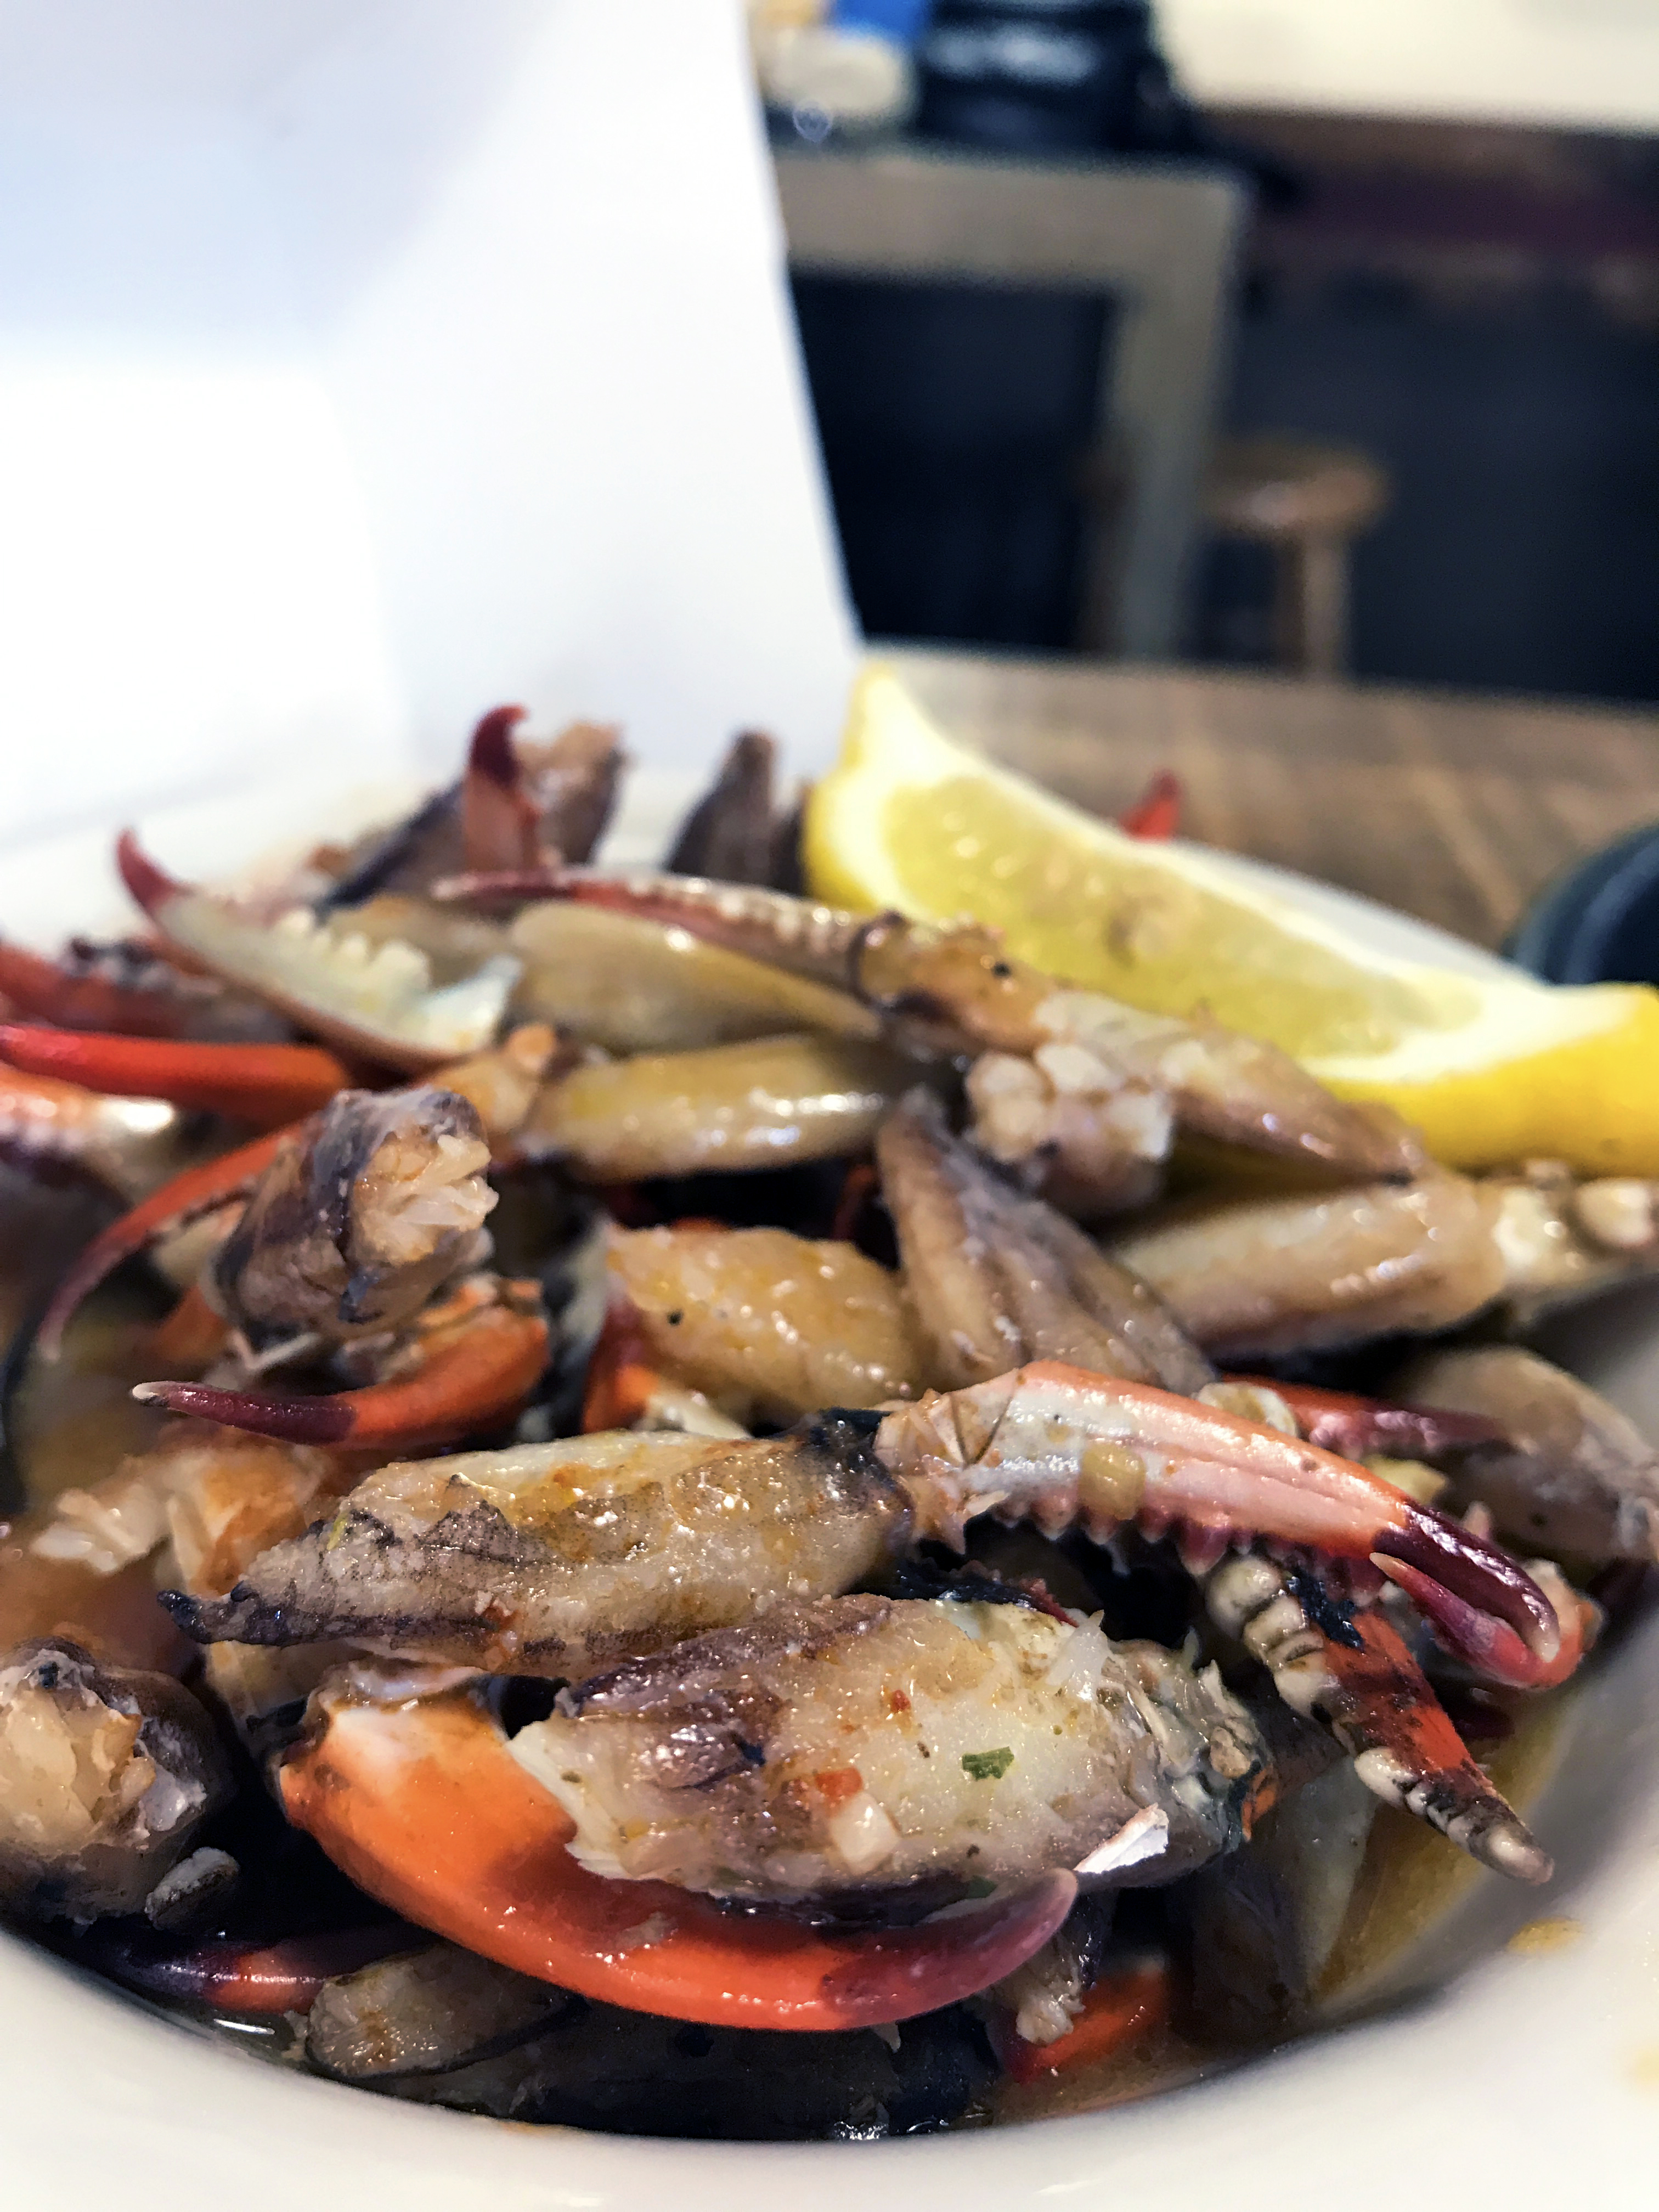 Marinated Blue Crab Claws from Gulf Shores Steamer//Kaitlan Foland